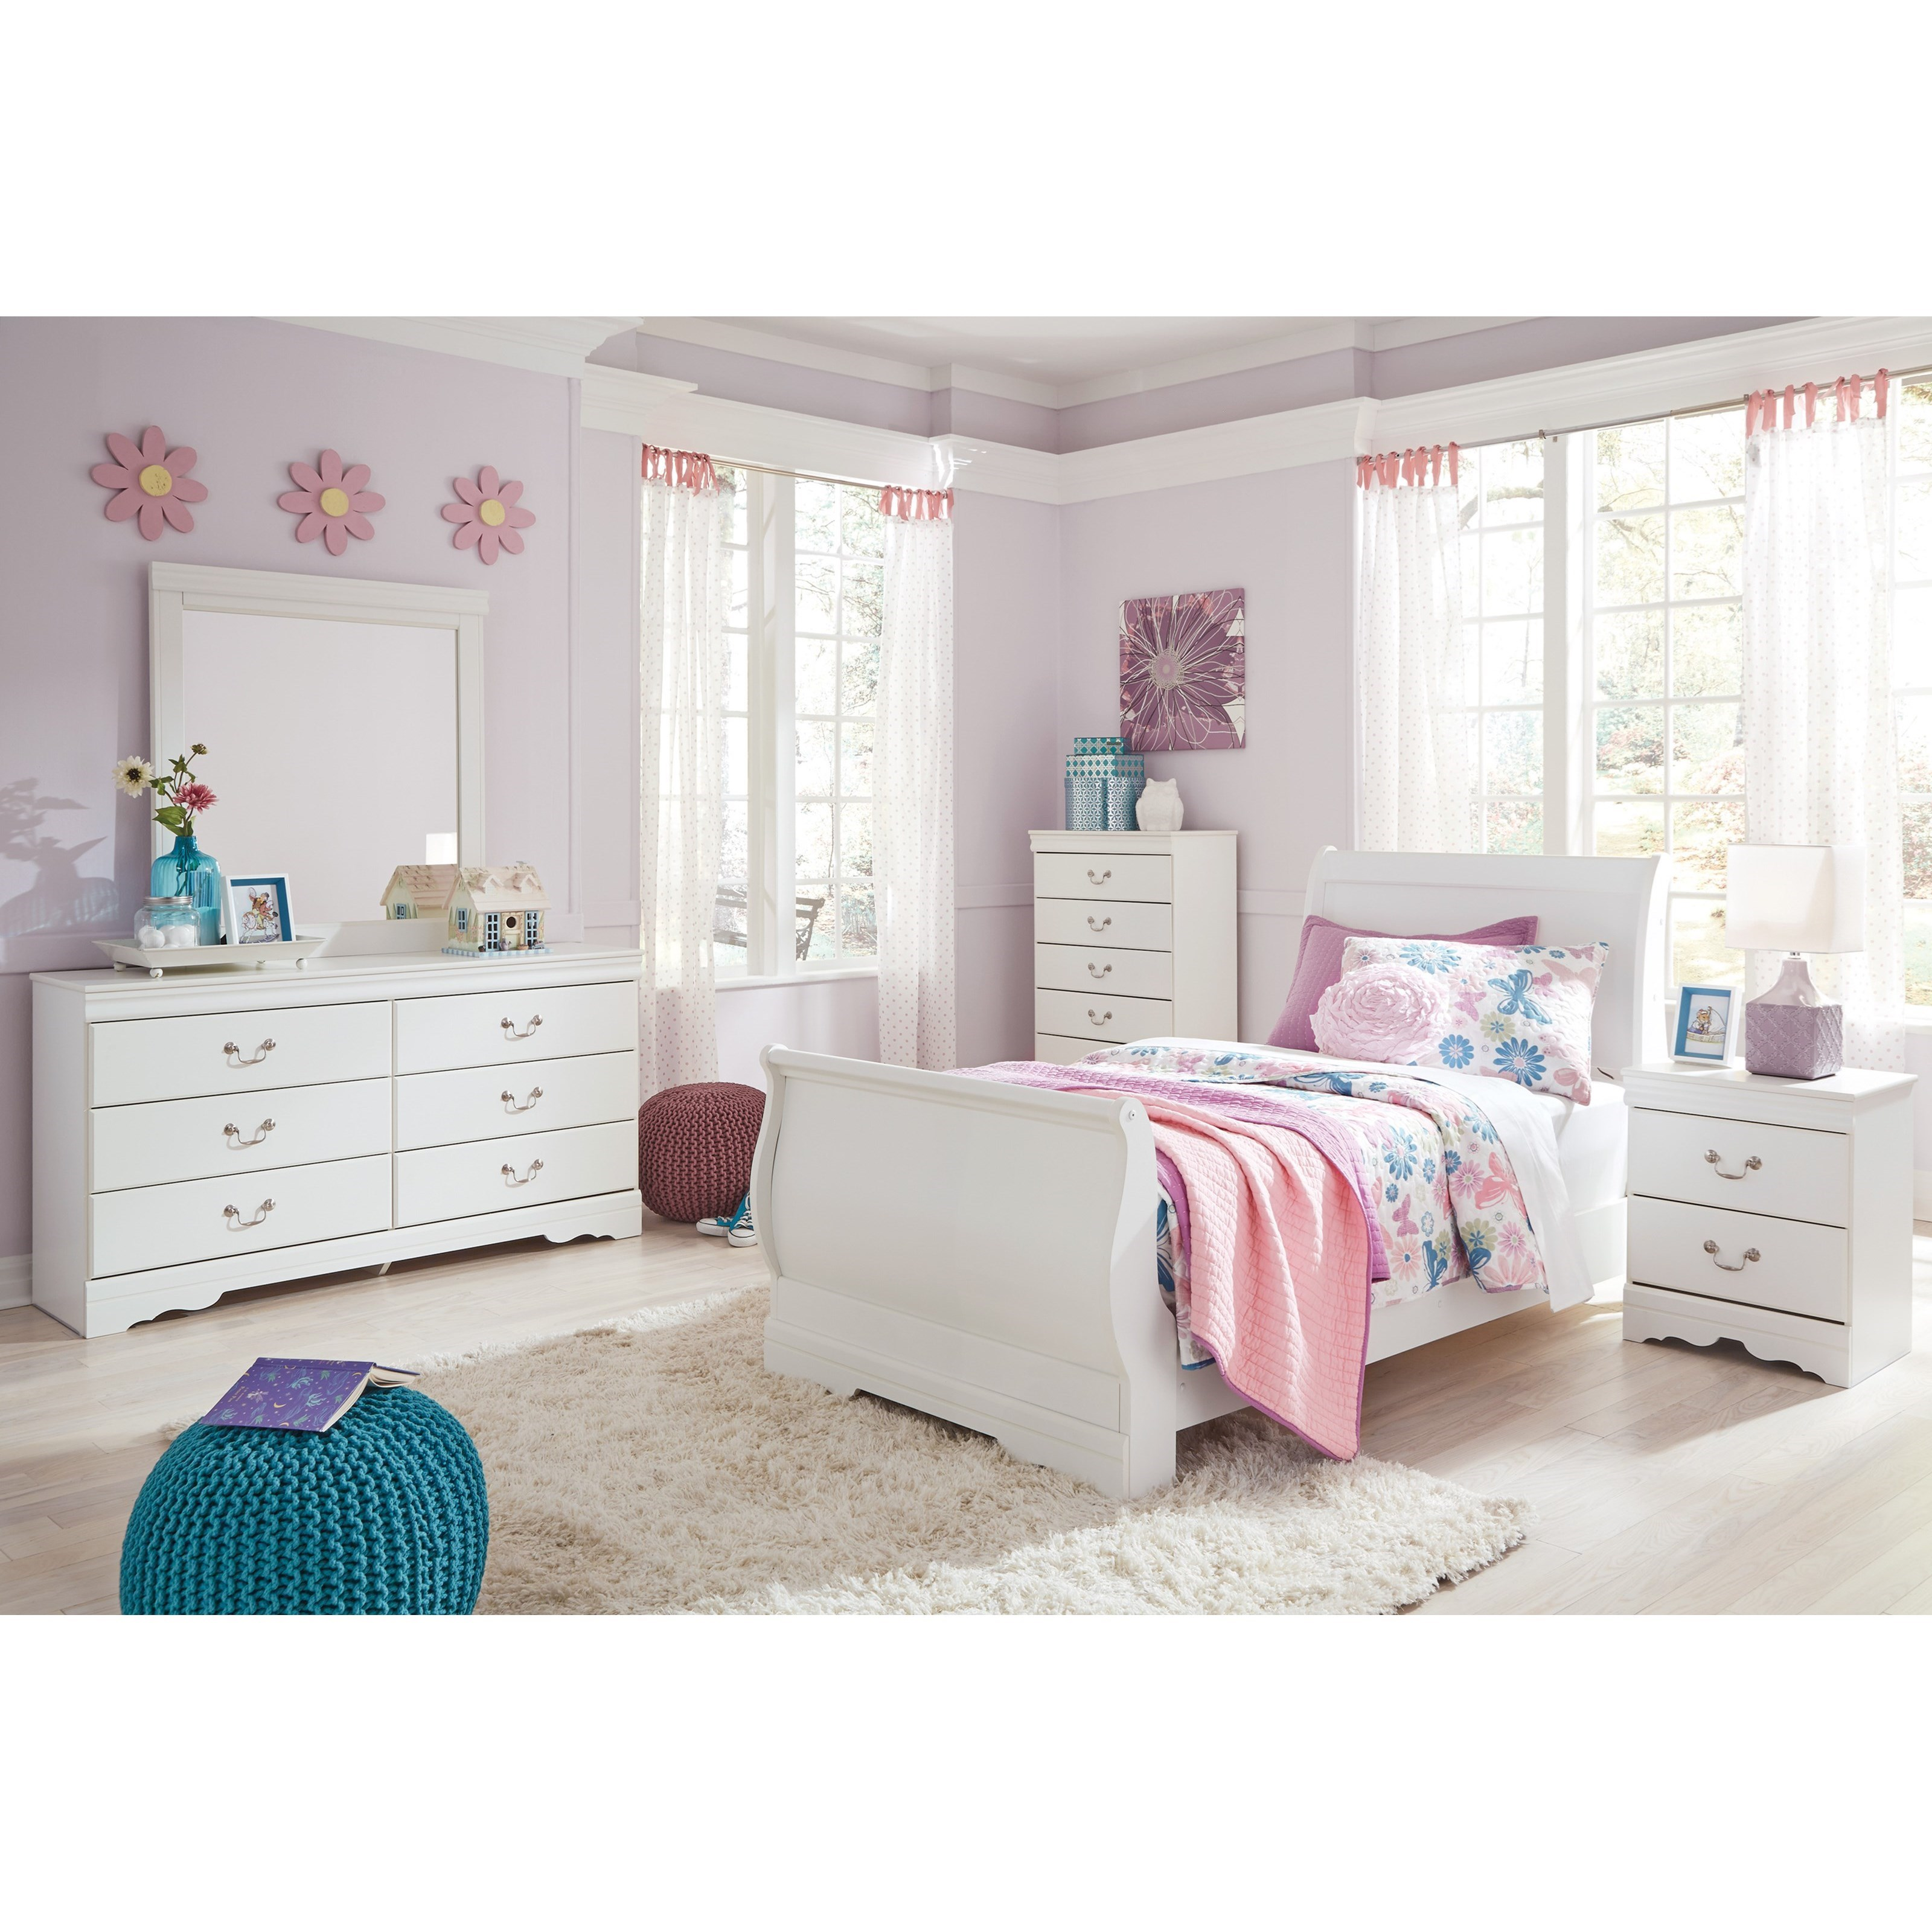 Anarasia Twin Bedroom Group by Signature Design by Ashley at Houston's Yuma Furniture